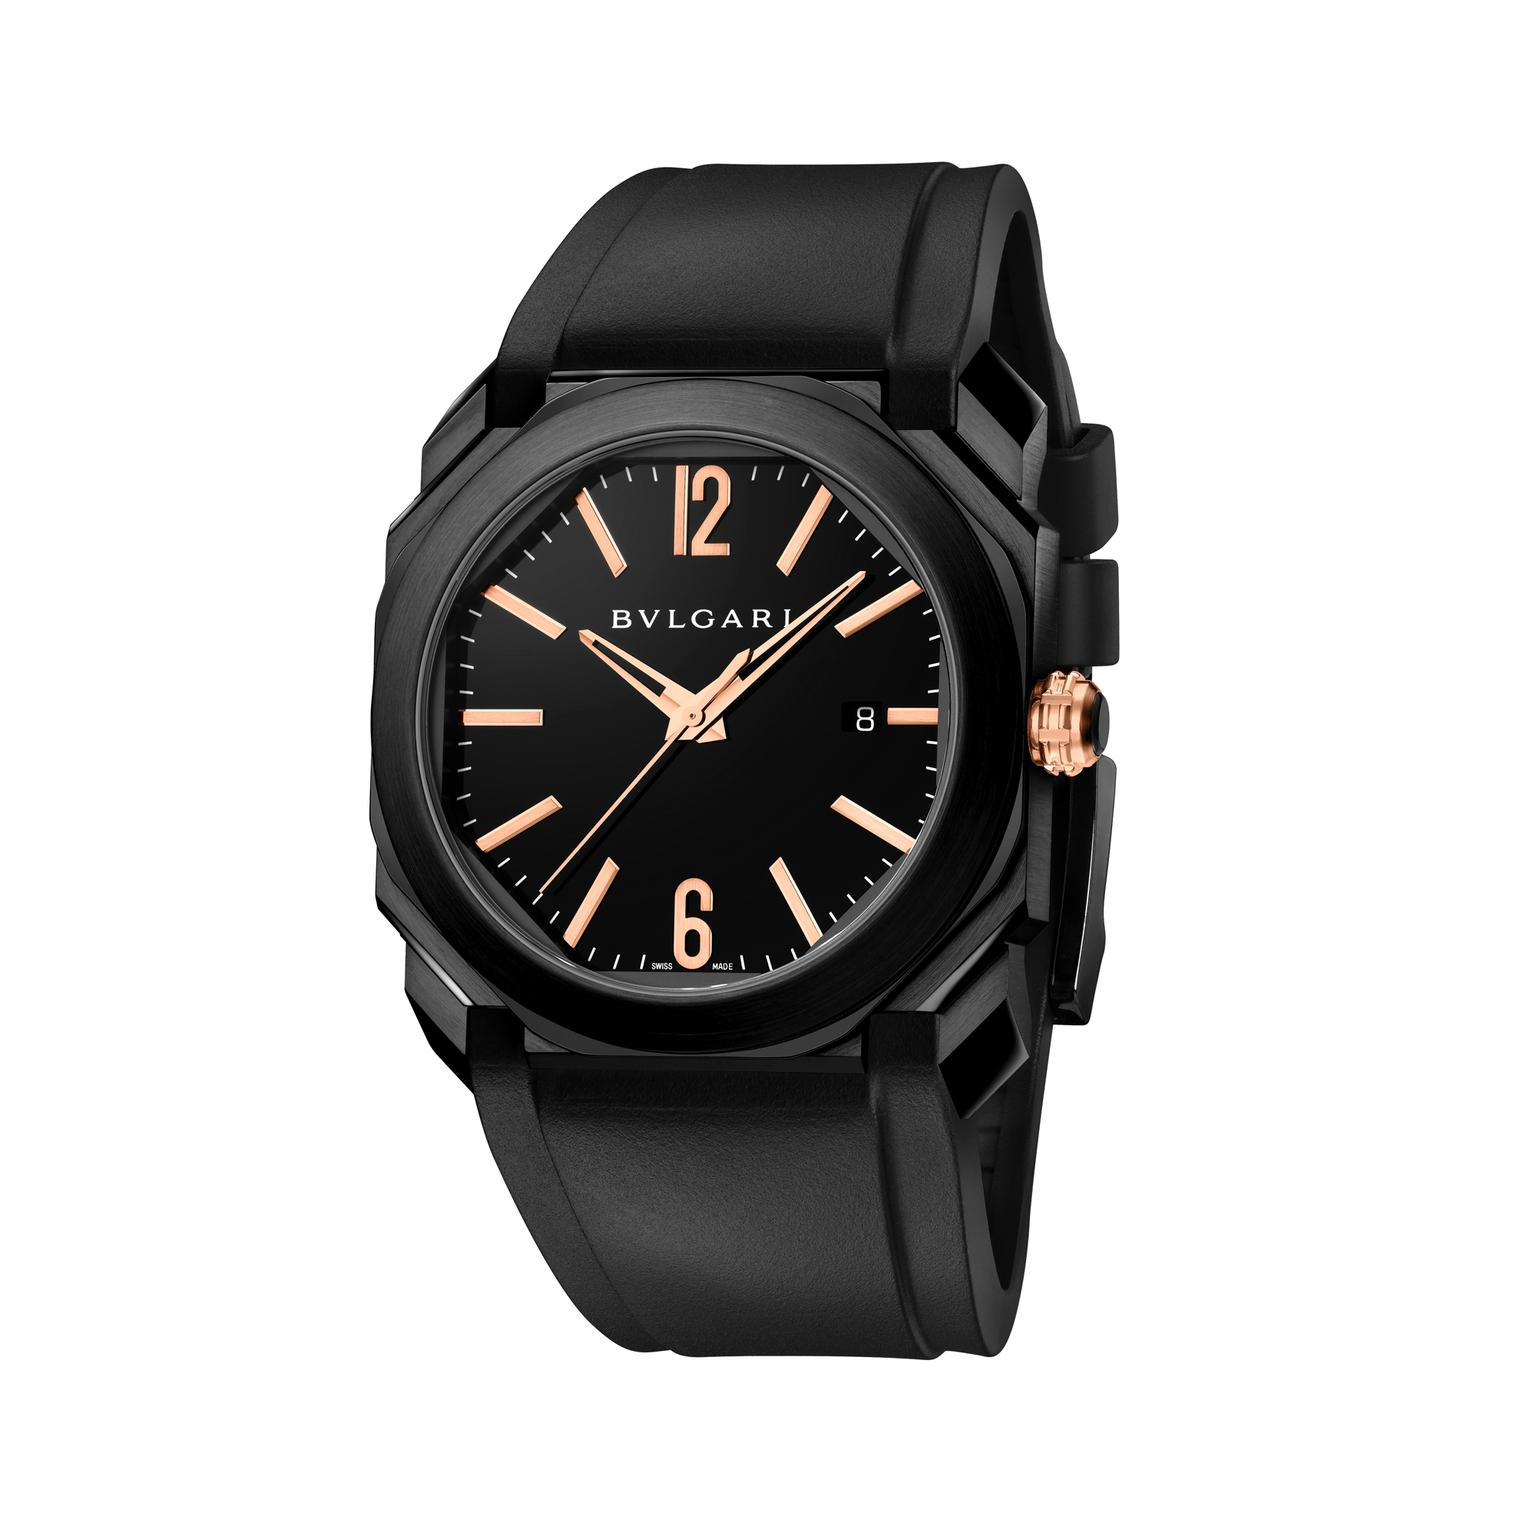 Bulgari Octo Tuttonero watch white background